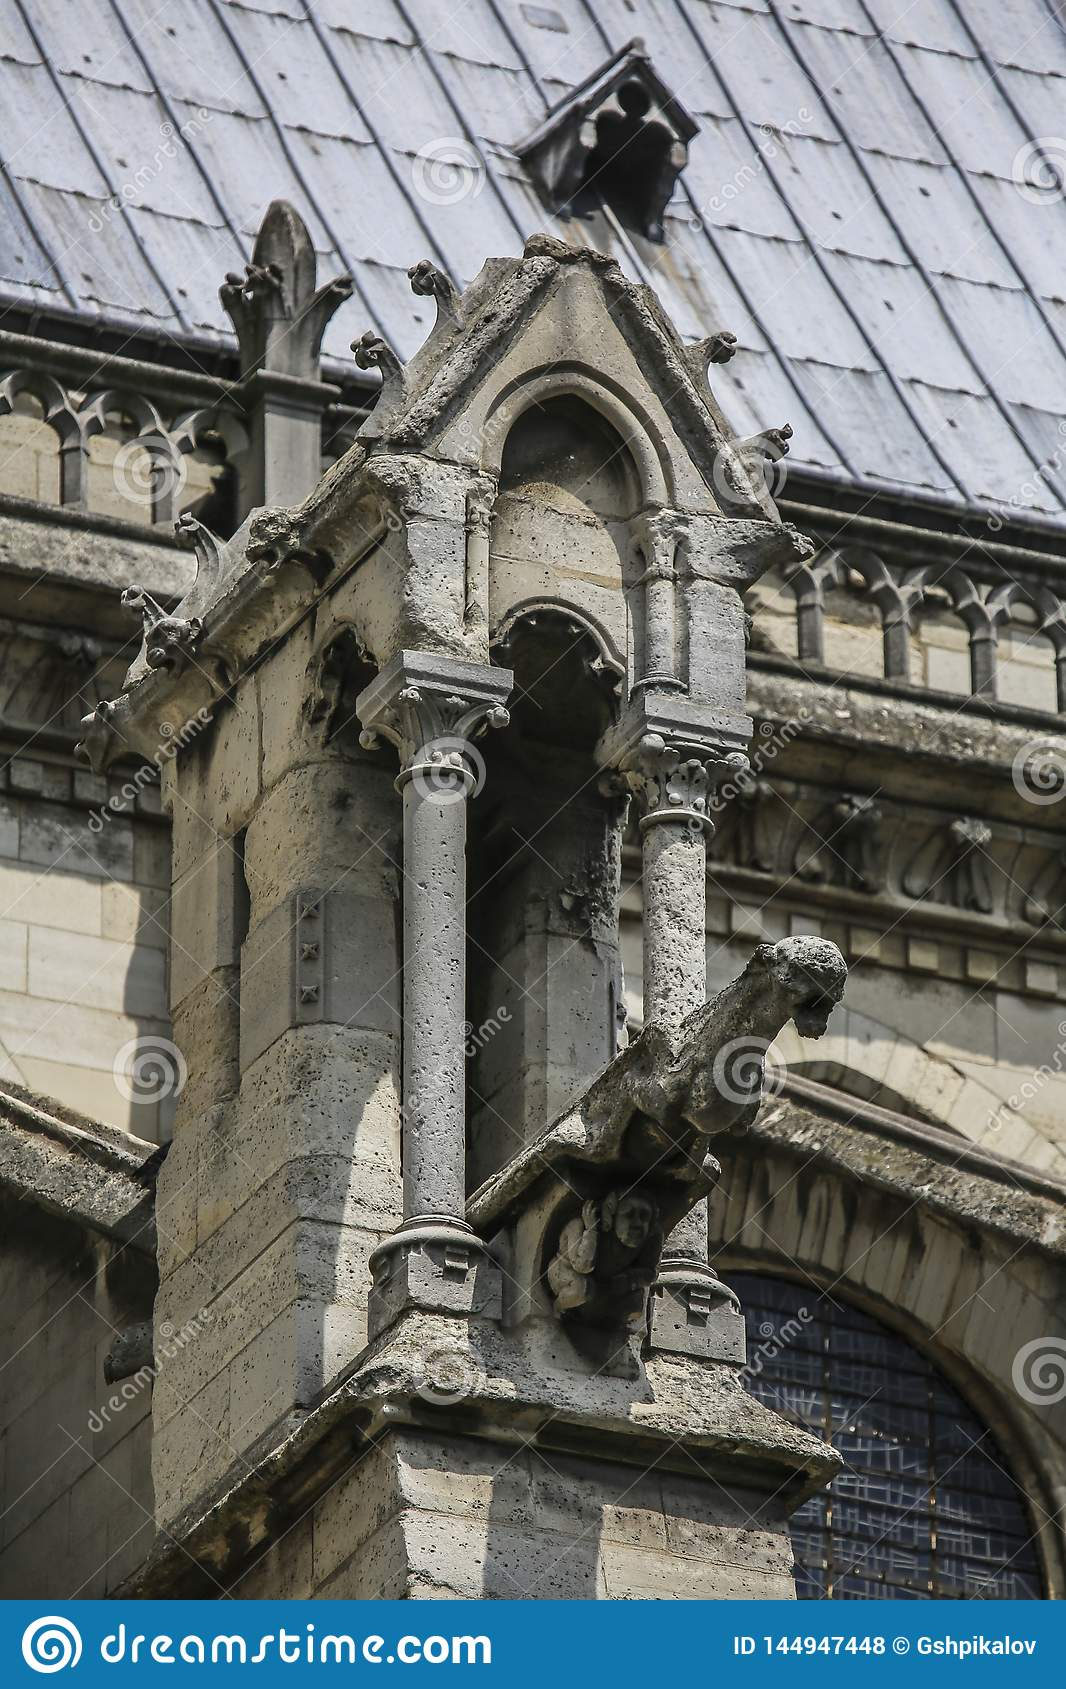 Notre Dame of Paris, France, ancient statue on roof, gargoyle